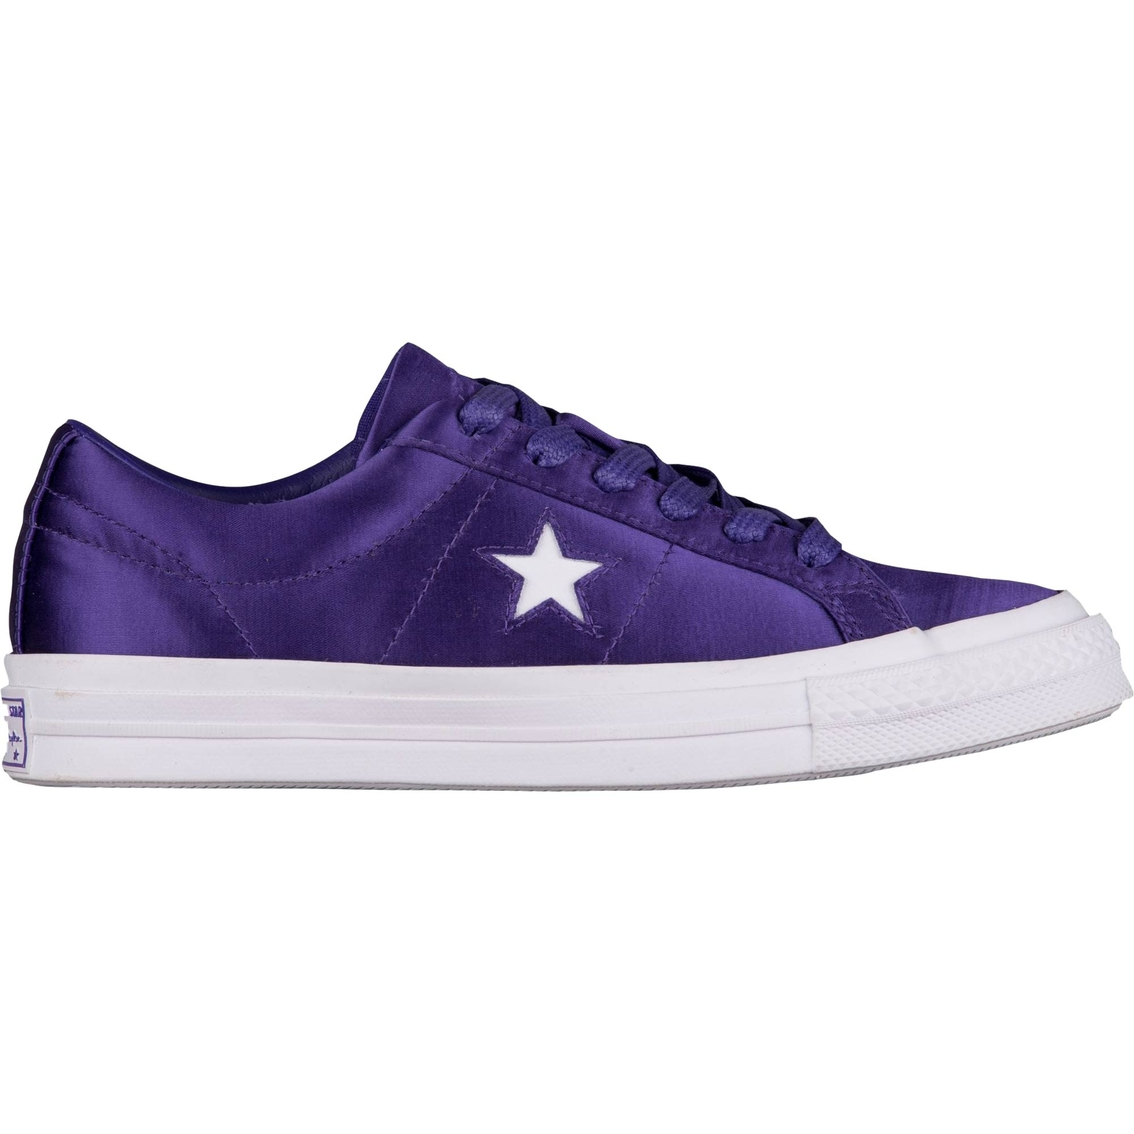 03e381eac18d Converse Women s One Star Satin Court Athletic Shoes